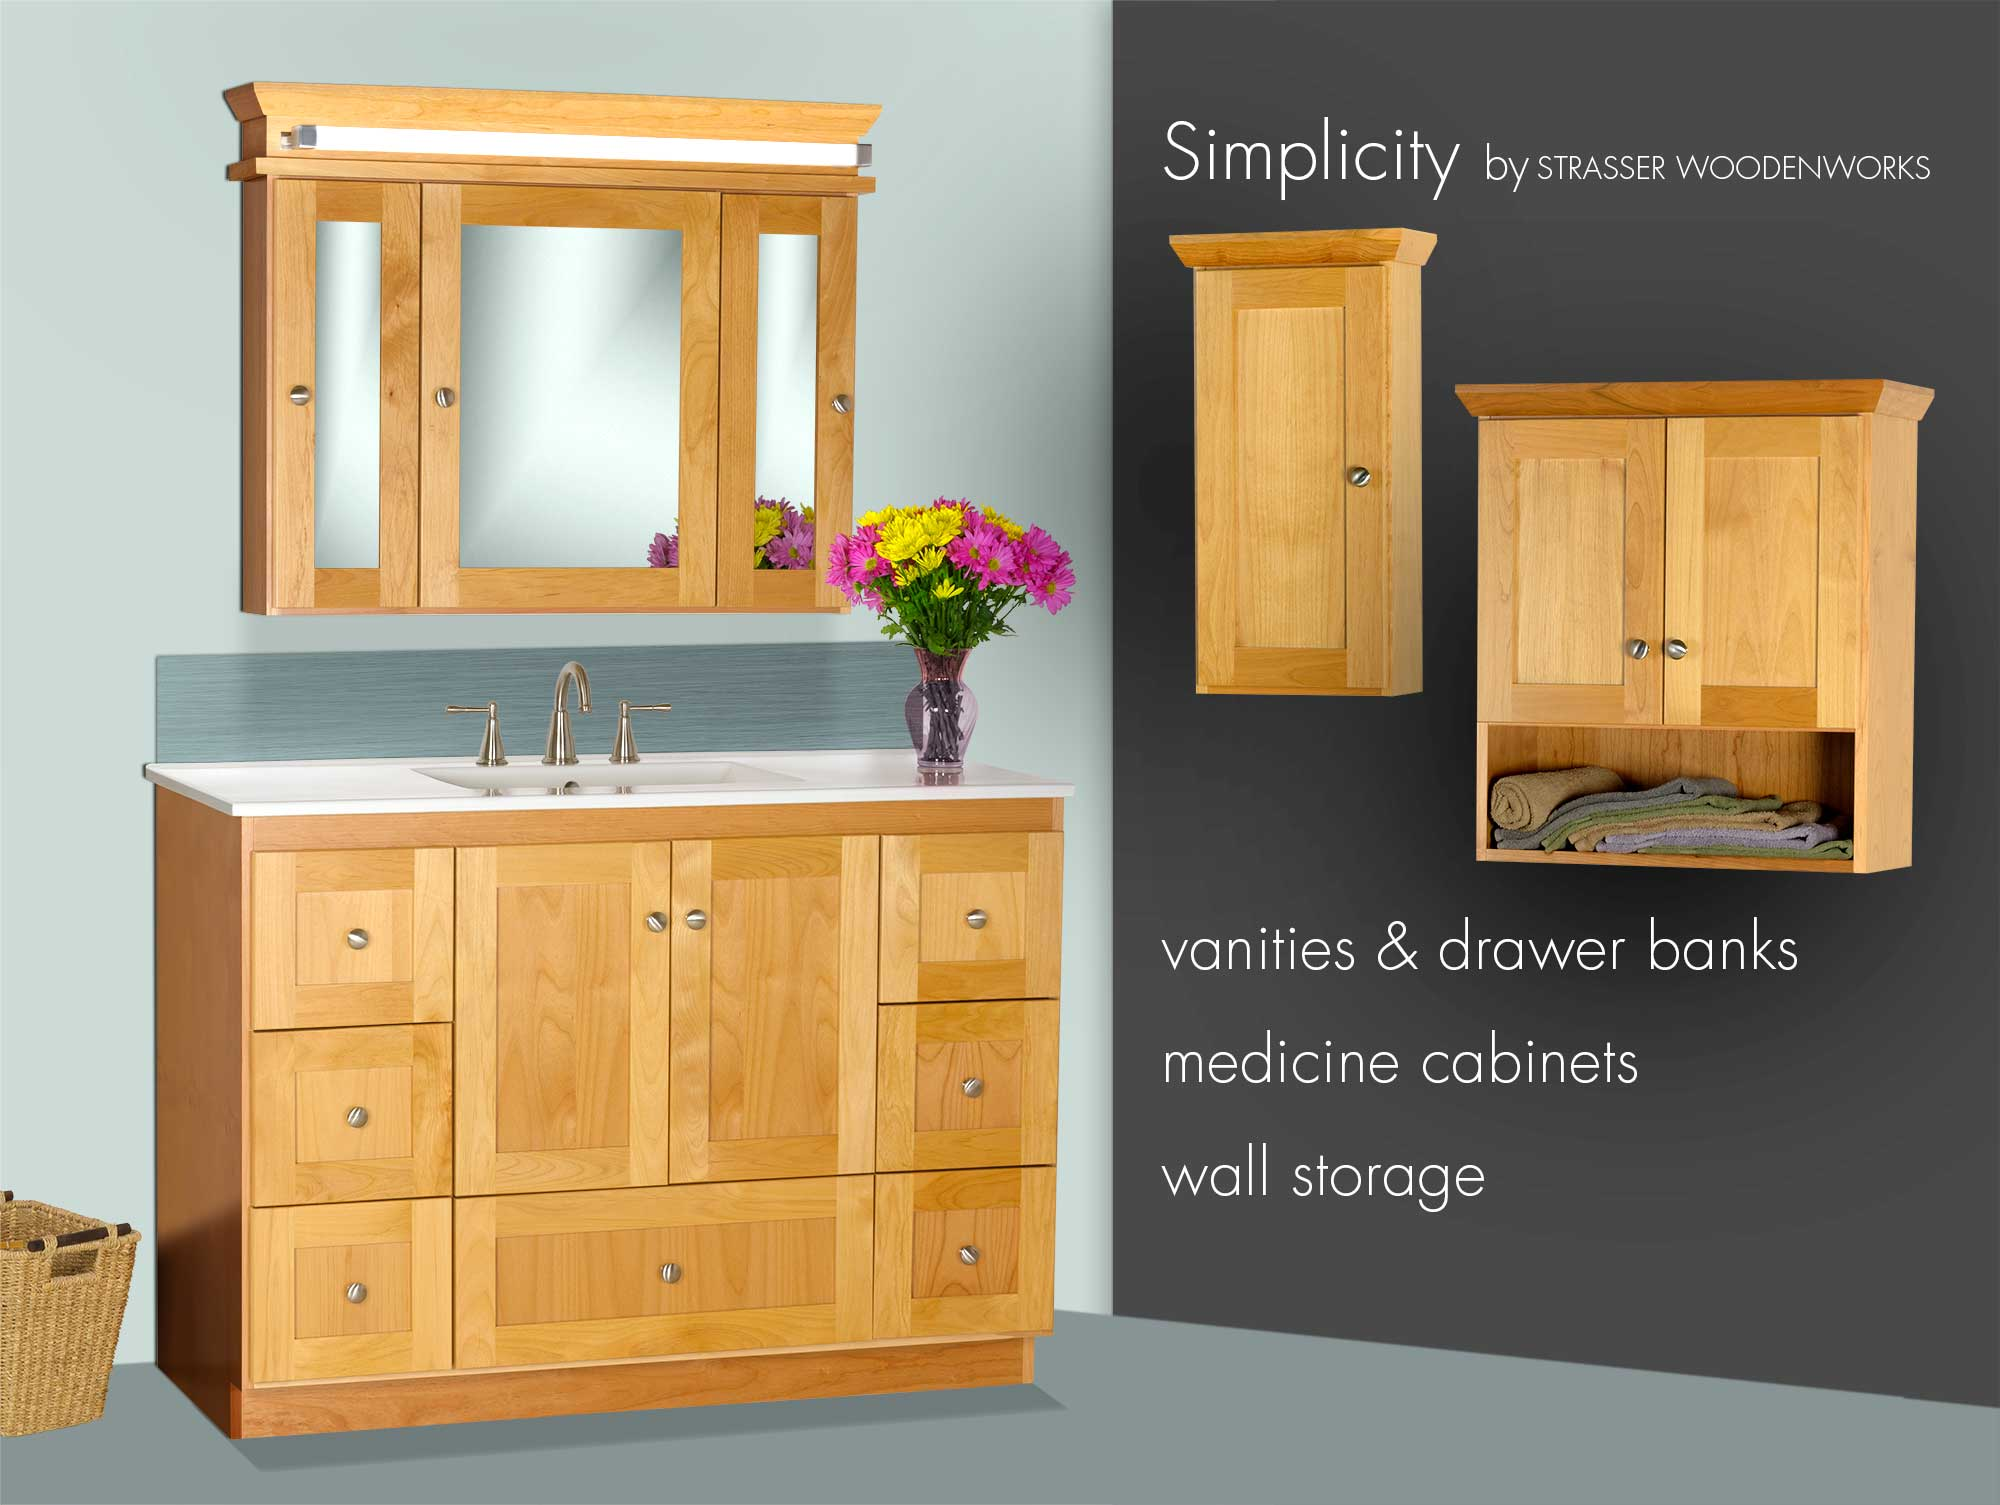 Bathroom cabinets made in the usa simplicity by strasser woodenworks Bathroom cabinets made in usa